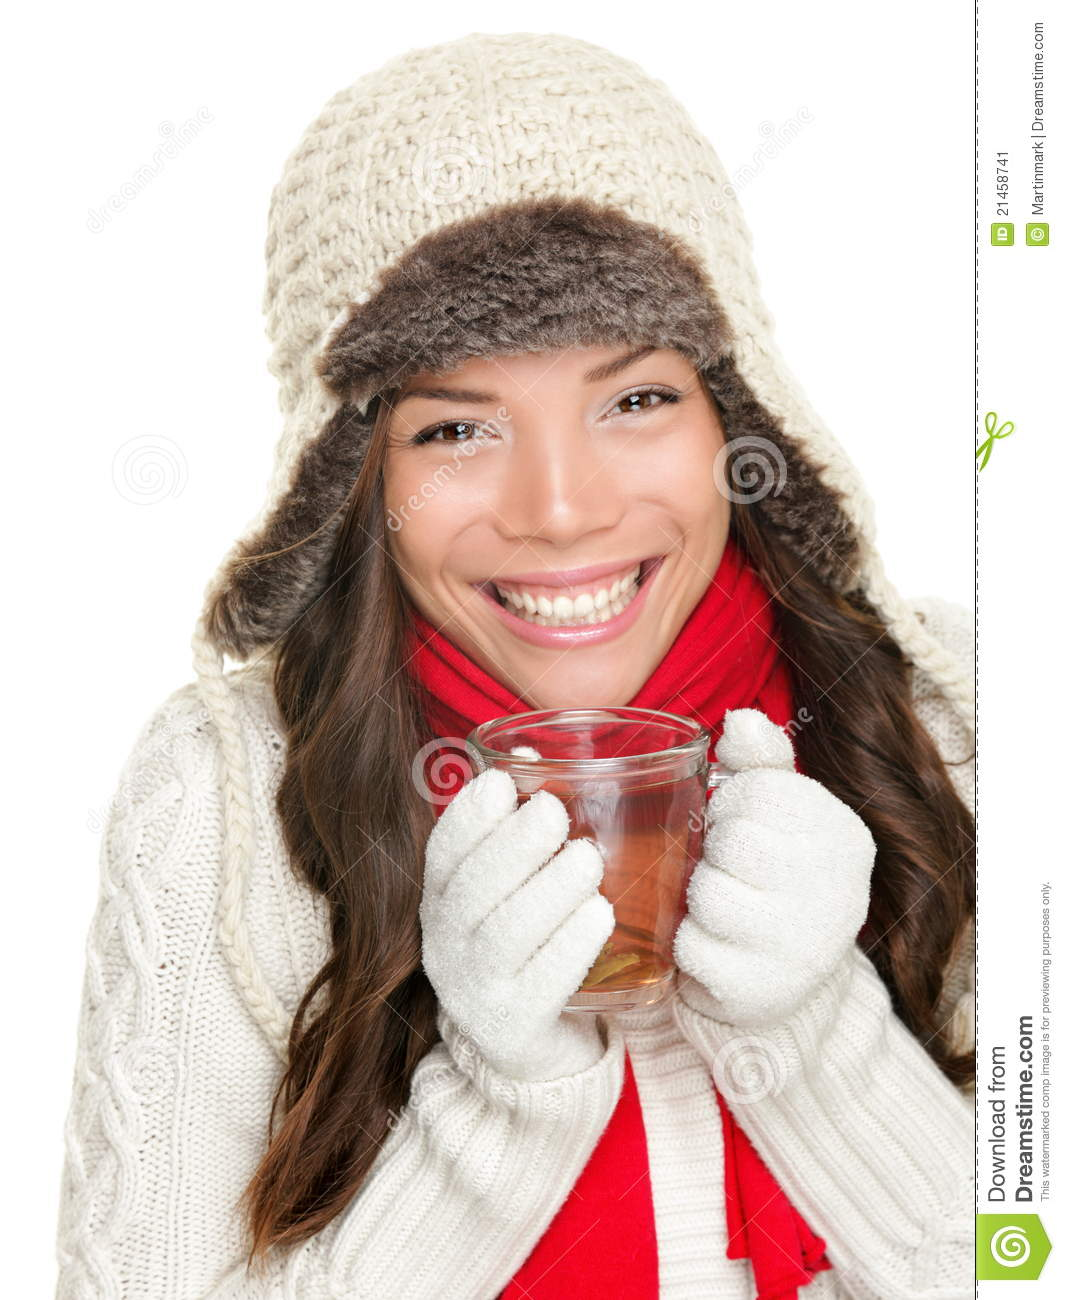 3847899fbfe6 Winter woman drinking tea stock image. Image of happy - 21458741